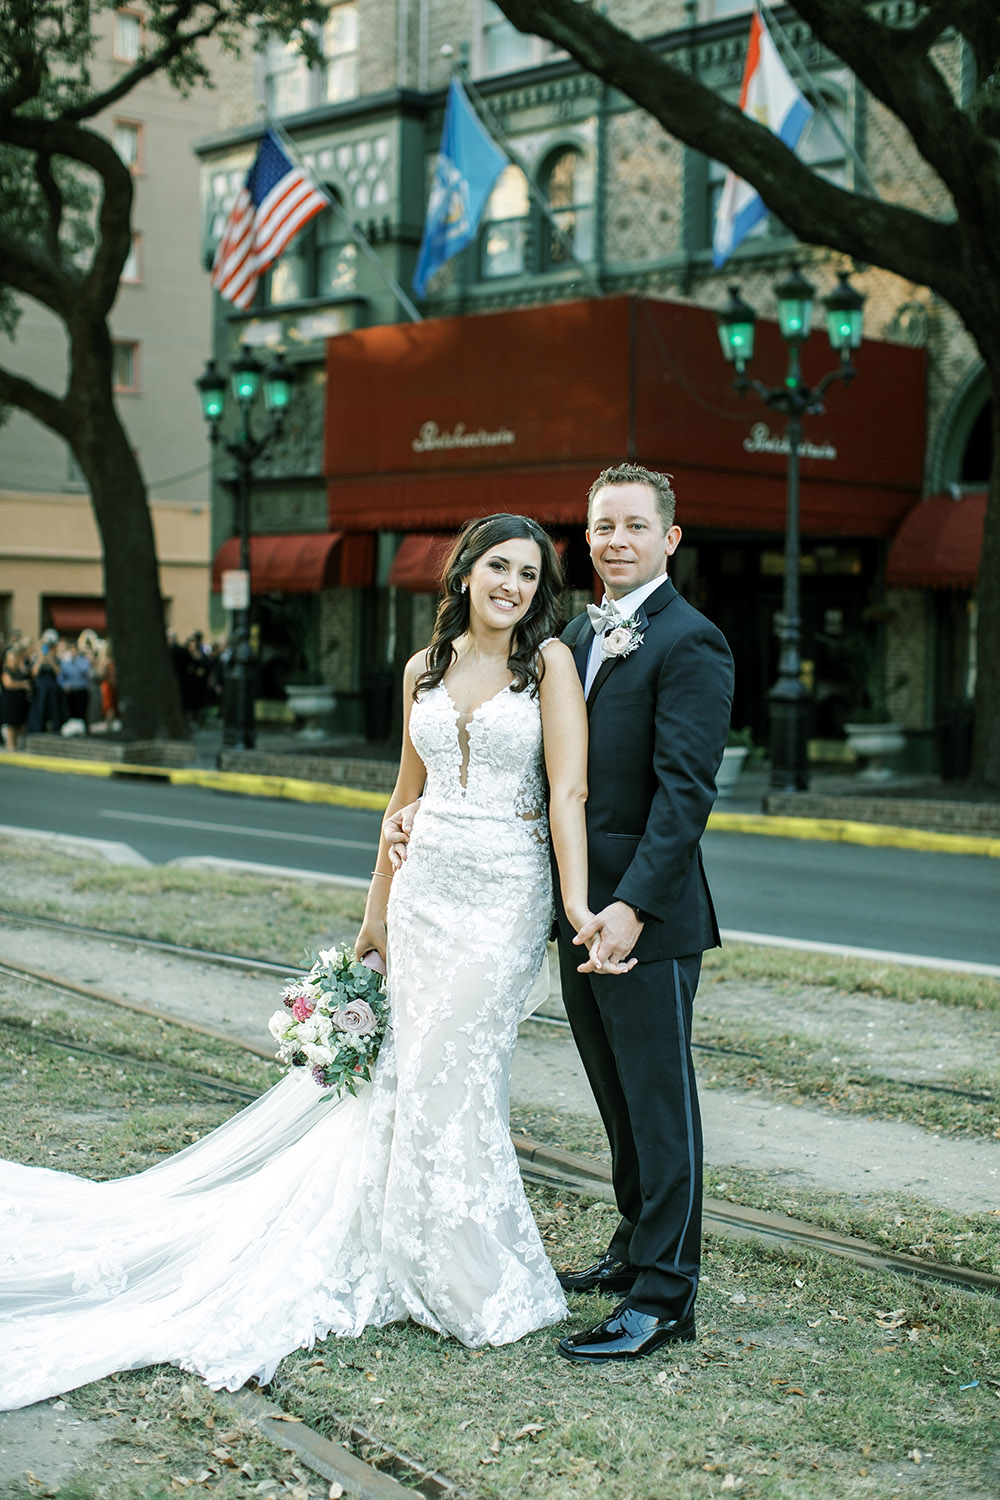 A bride and groom pose on the Neutral Ground outside the Pontchartrain Hotel